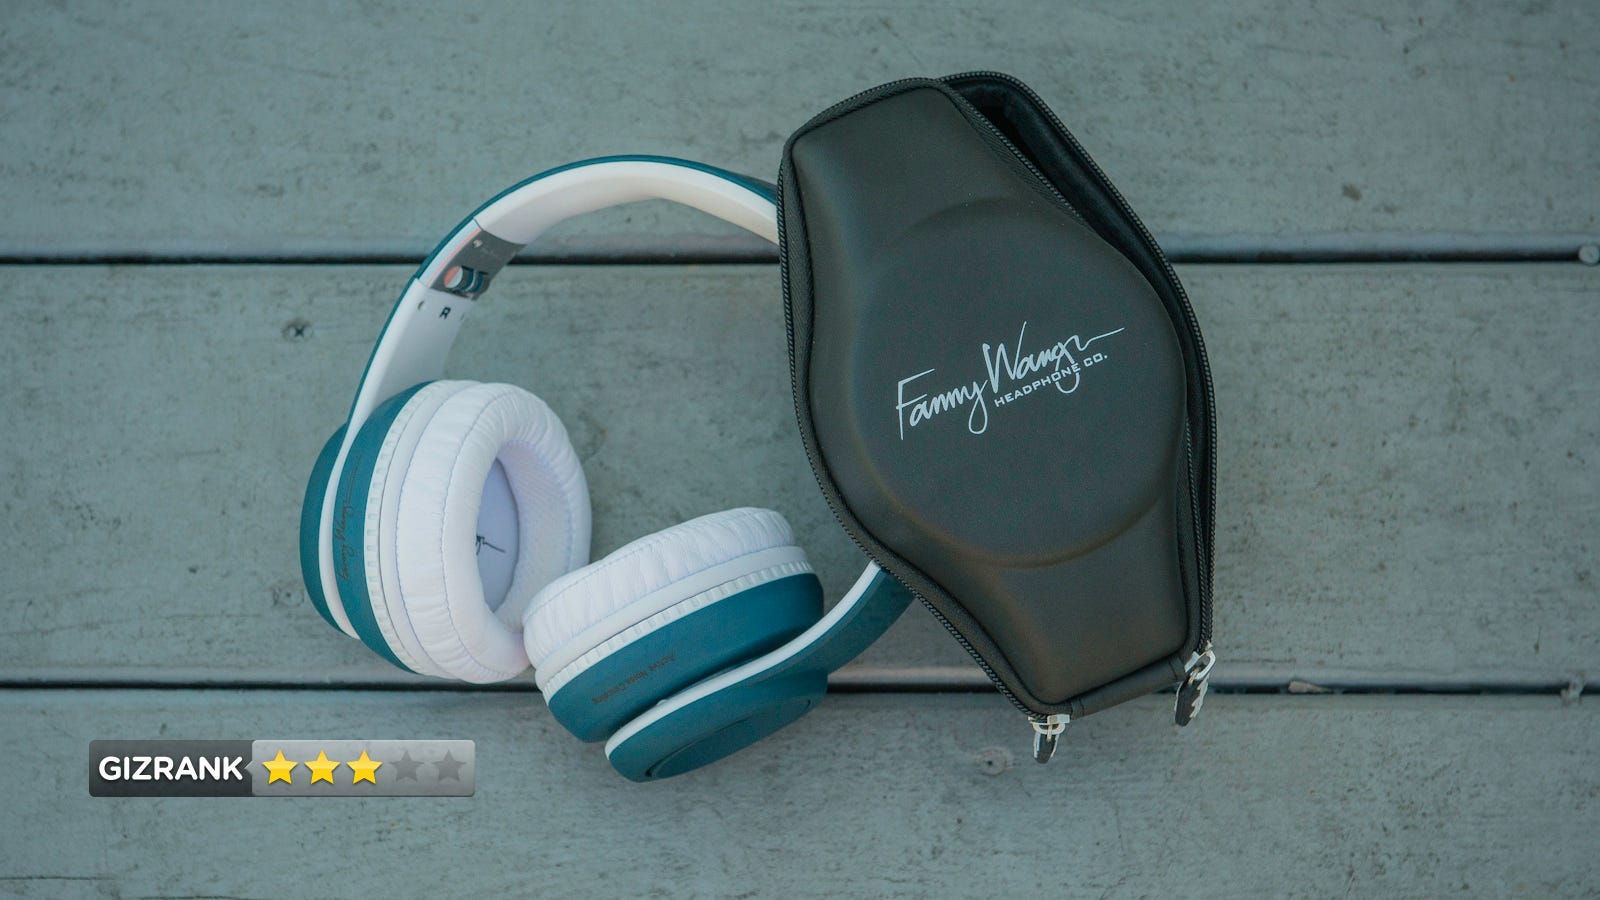 earbuds oem samsung - Fanny Wang 3001 Noise-Canceling Headphones Review: Phat Sound, Phony Fashion